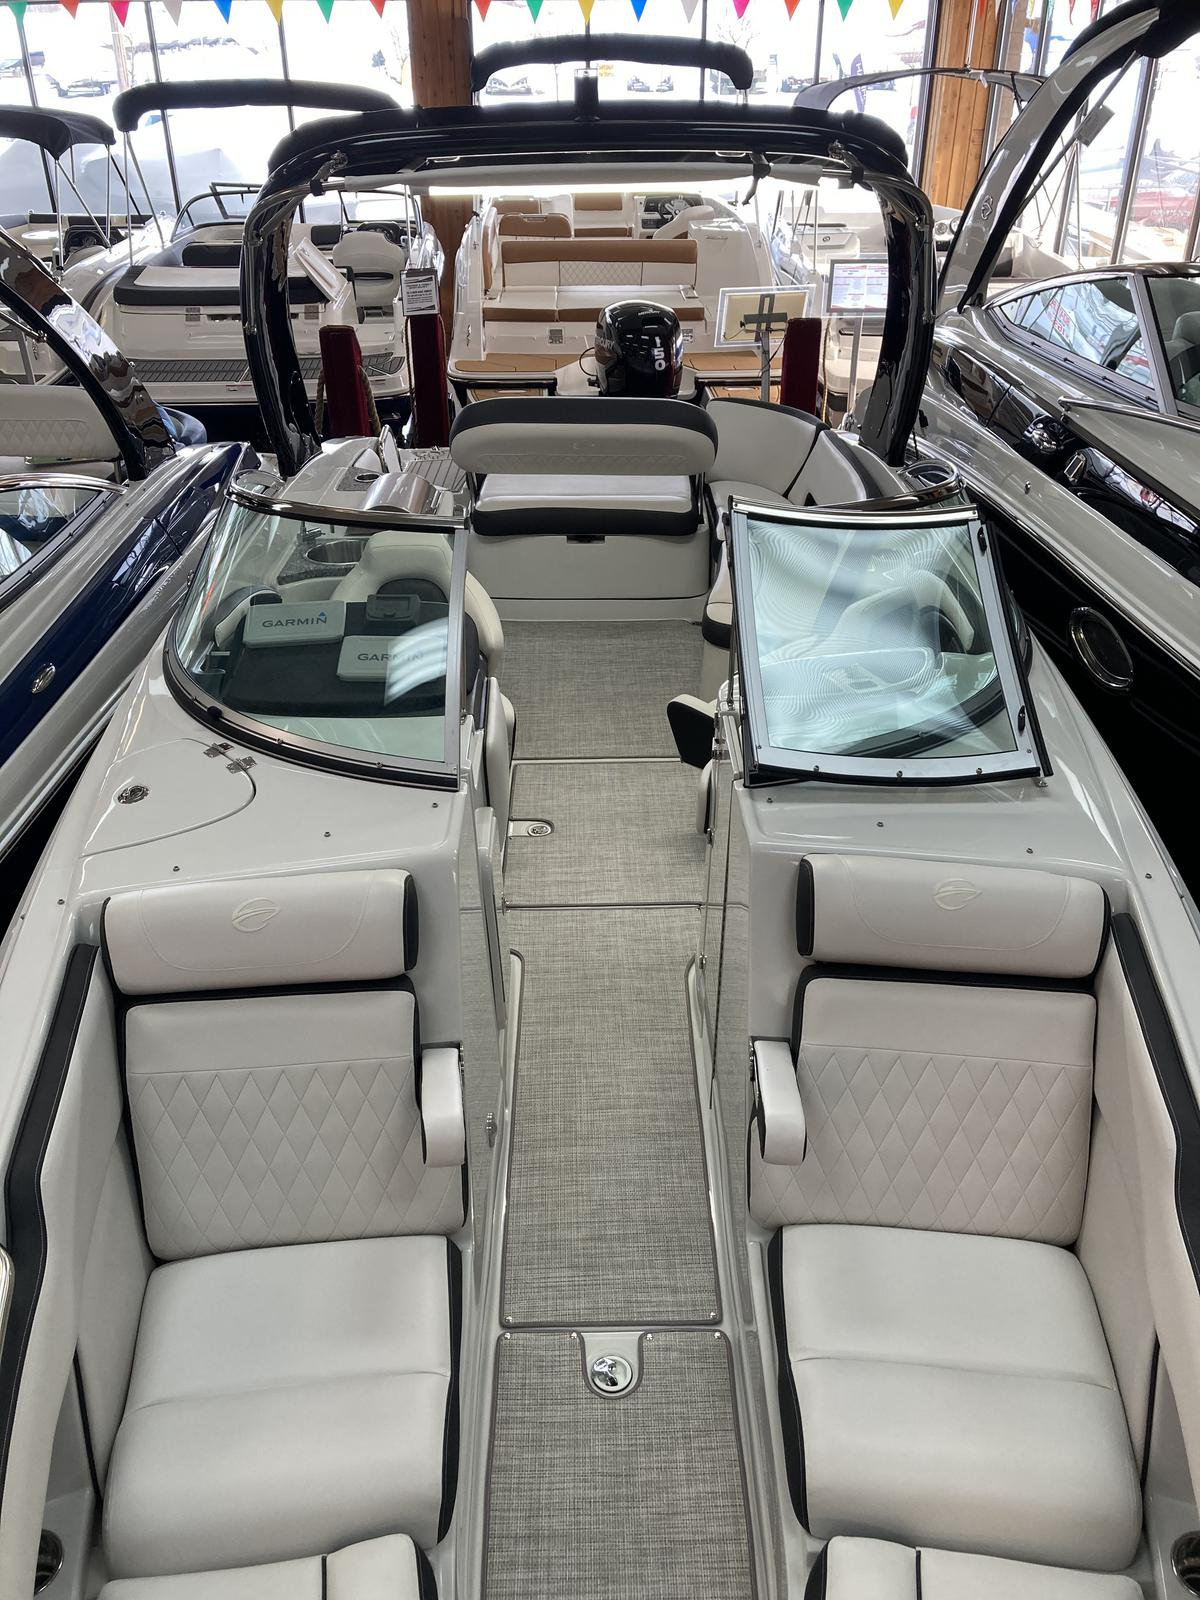 2021 Crownline boat for sale, model of the boat is 290 SS & Image # 4 of 7